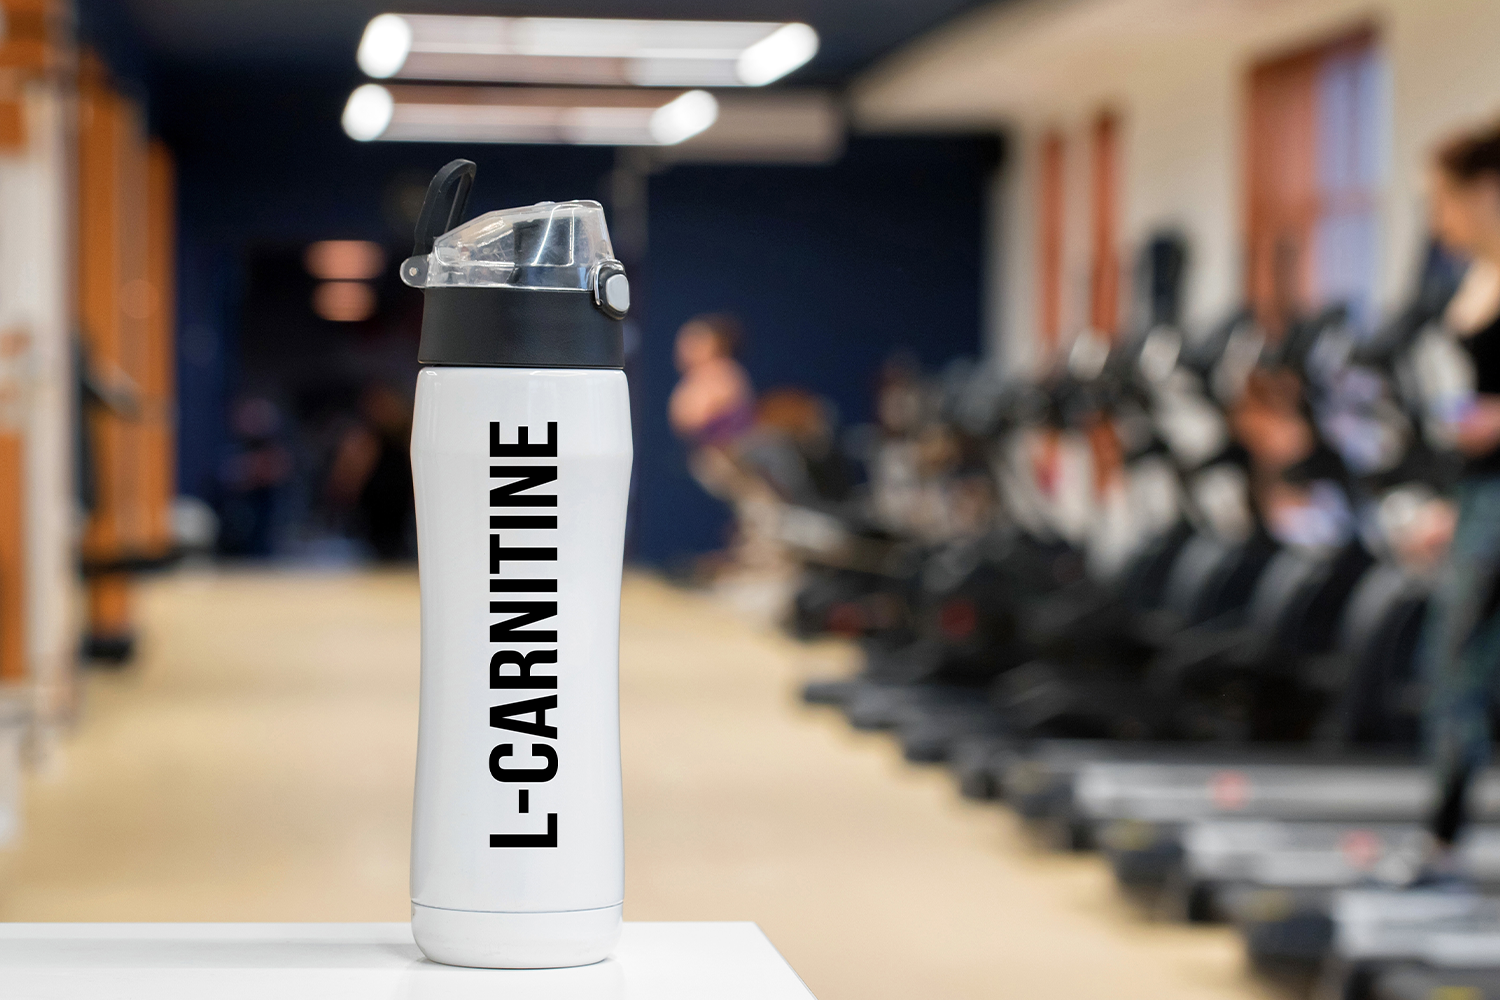 L-Carnitine Weight Loss: Does L-Carnitine Help Lose Weight?